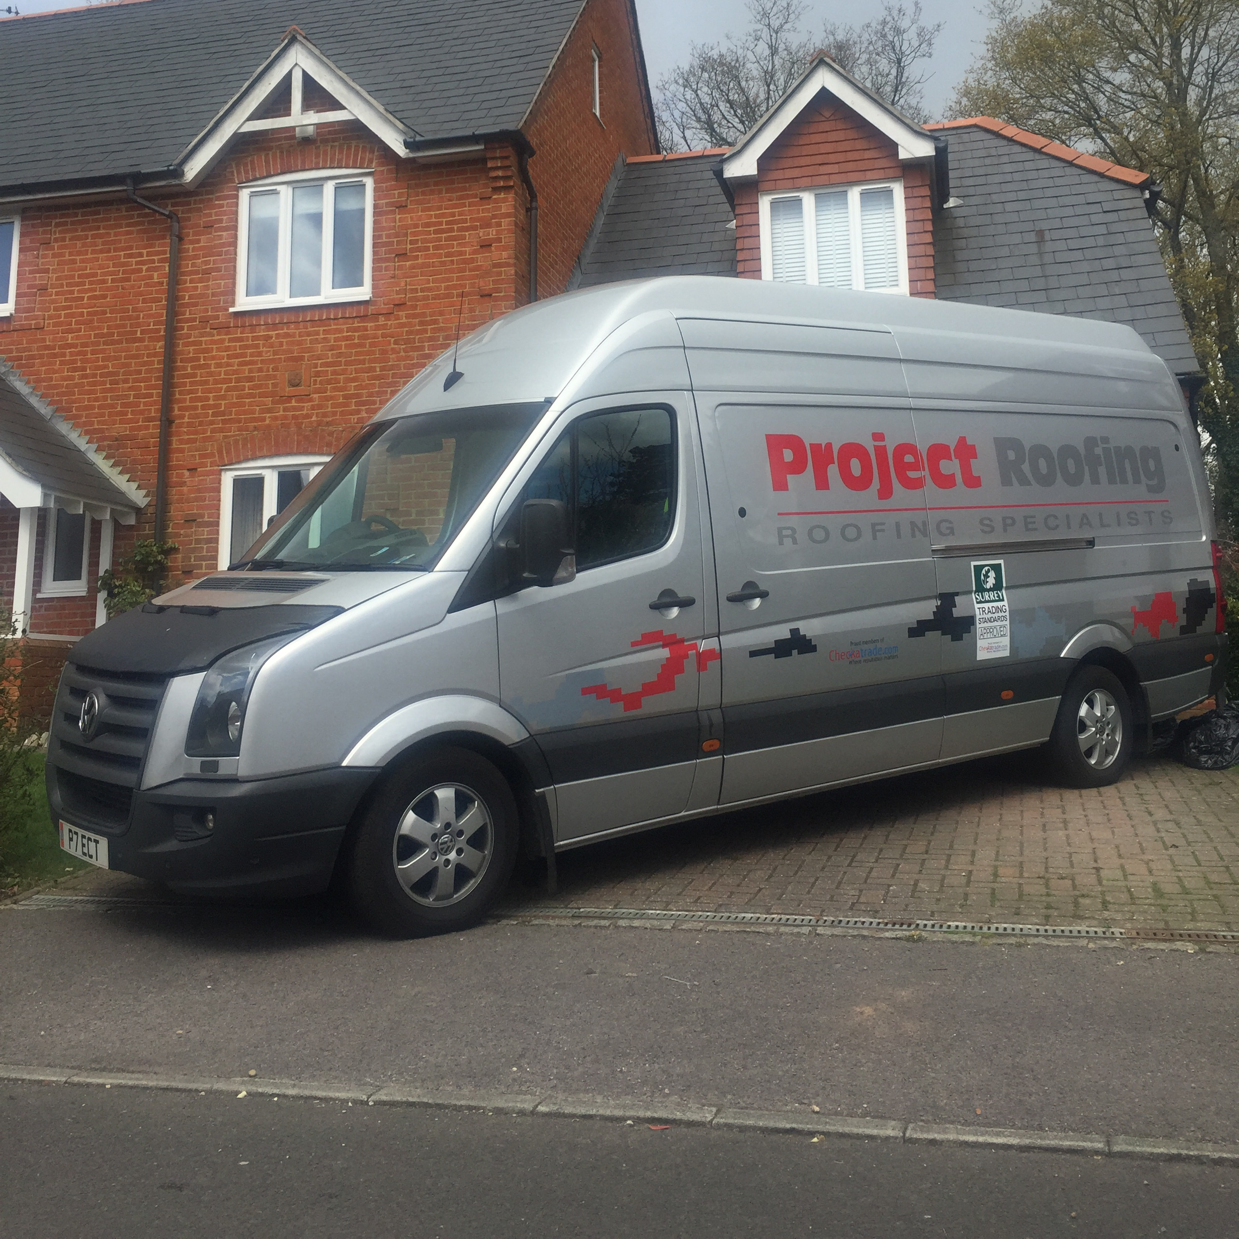 Project Roofing Ltd